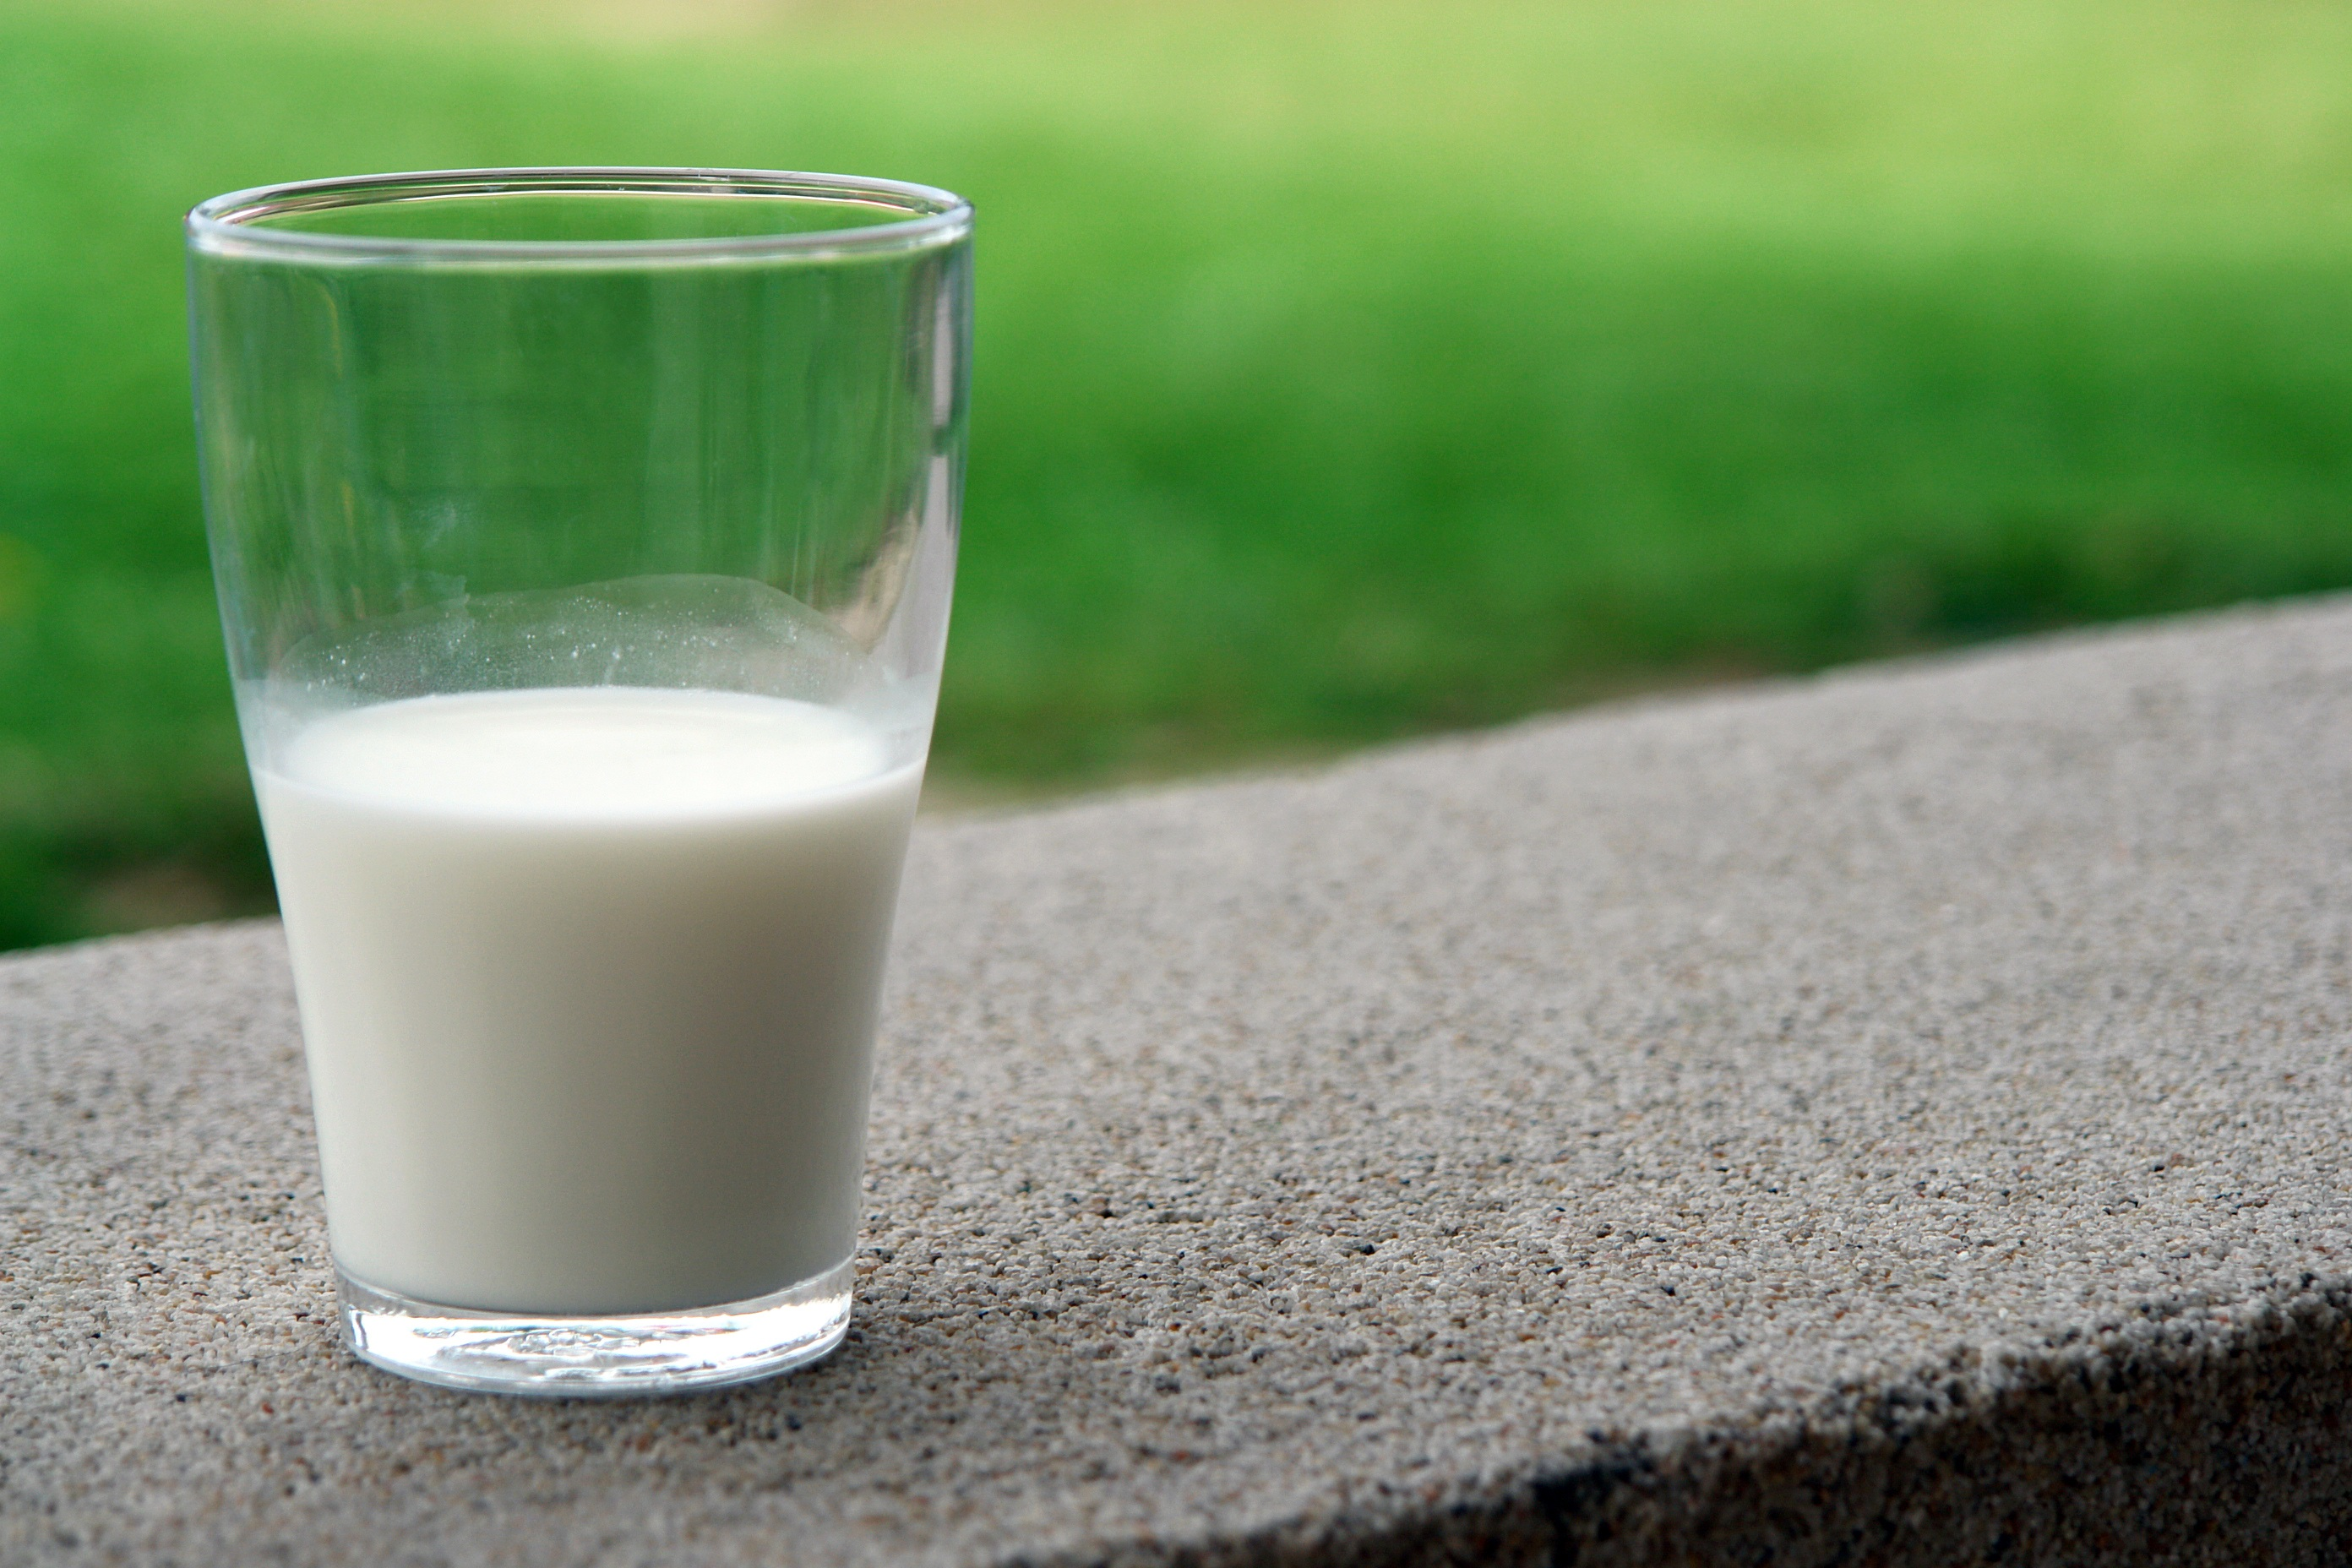 Glass half-full of milk outside